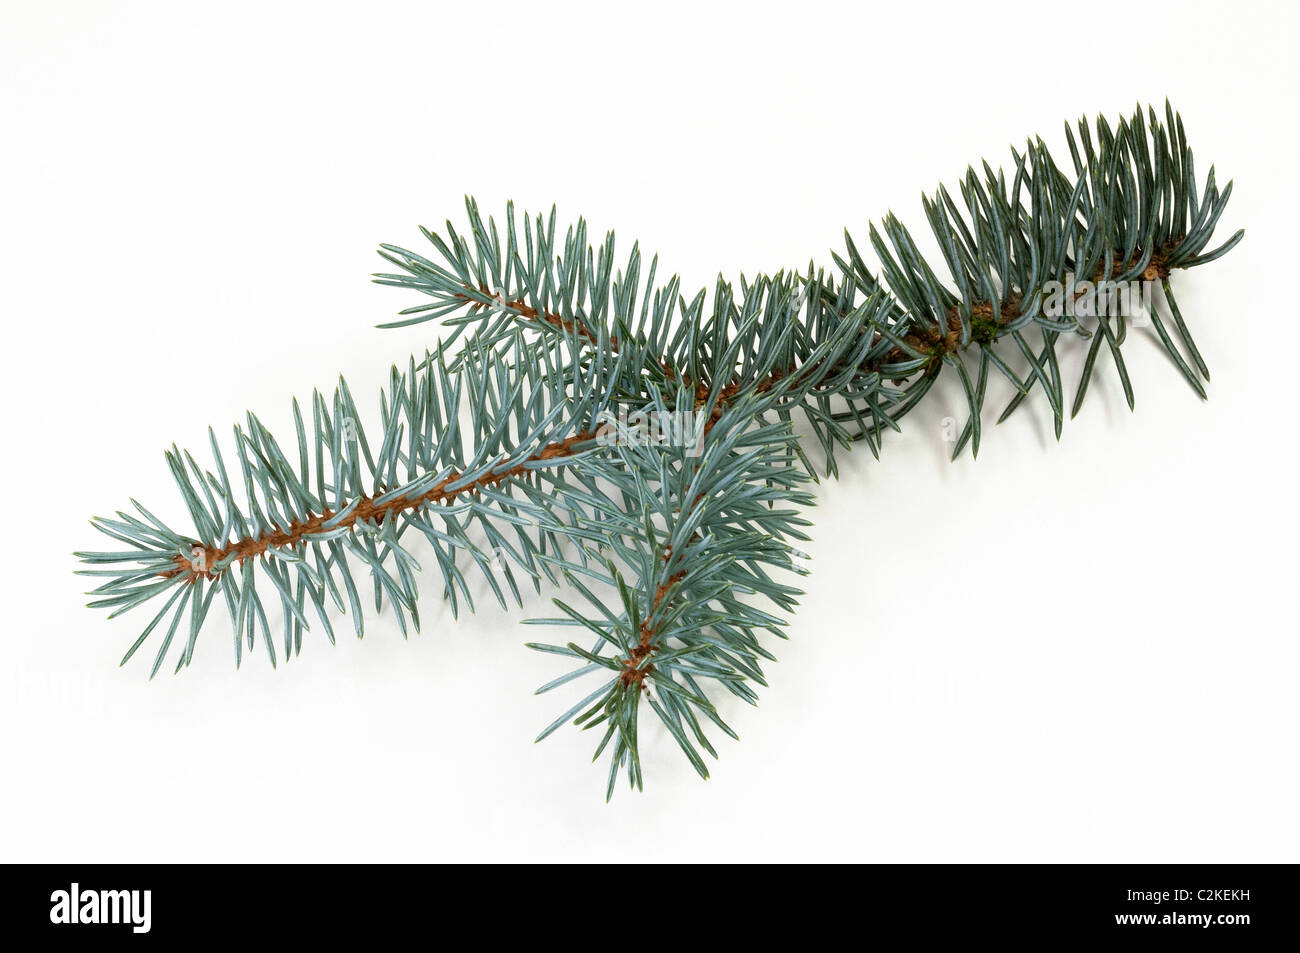 Blue Spruce (Picea pungens glauca), twig. Studio picture against a white background. - Stock Image